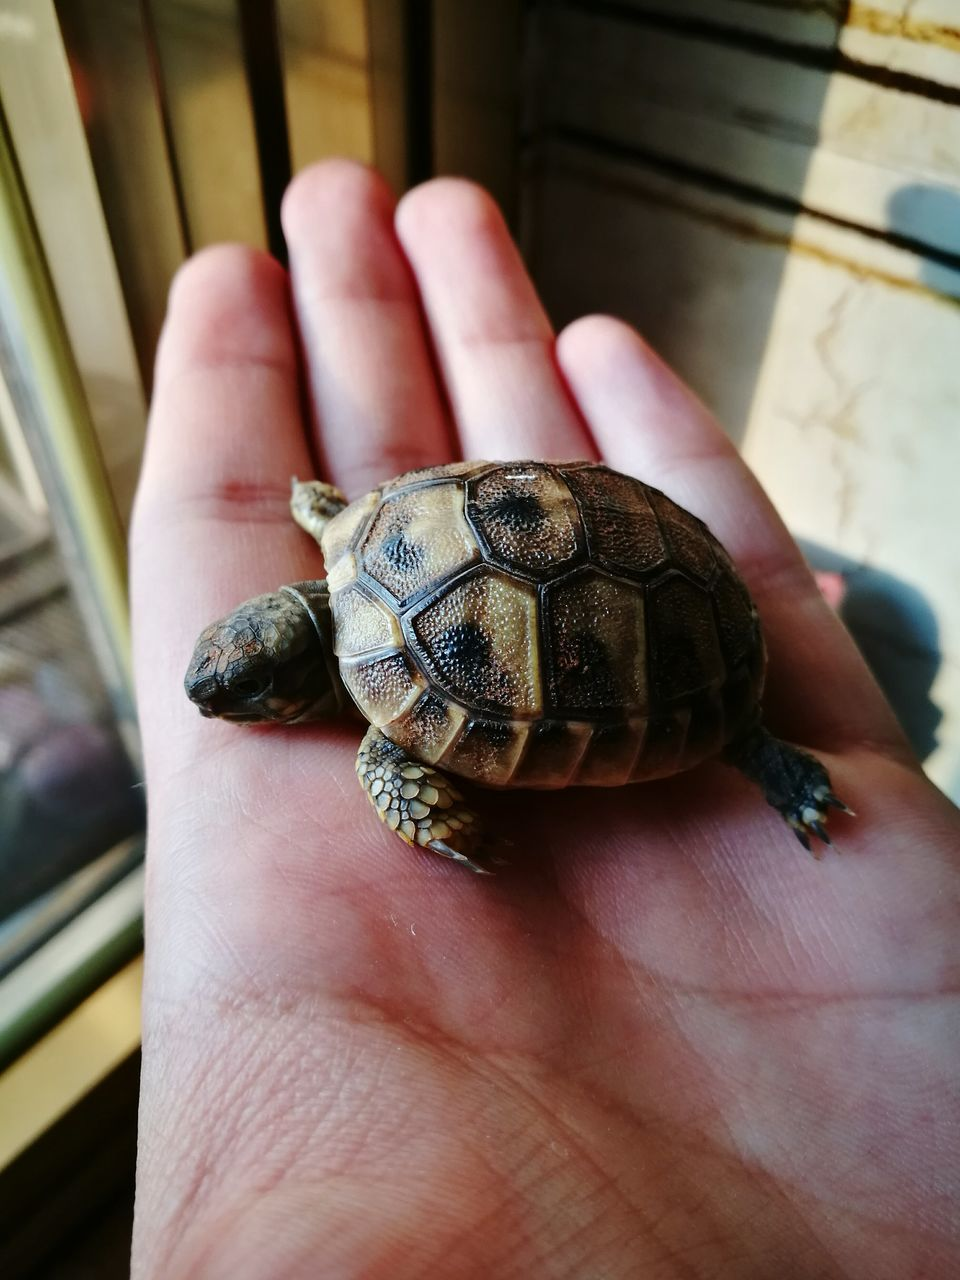 human hand, human body part, one animal, animal themes, one person, human finger, real people, animals in the wild, wildlife, unrecognizable person, turtle, animal wildlife, day, holding, close-up, focus on foreground, outdoors, leisure activity, reptile, sea turtle, lifestyles, palm, fragility, tortoise, nature, tortoise shell